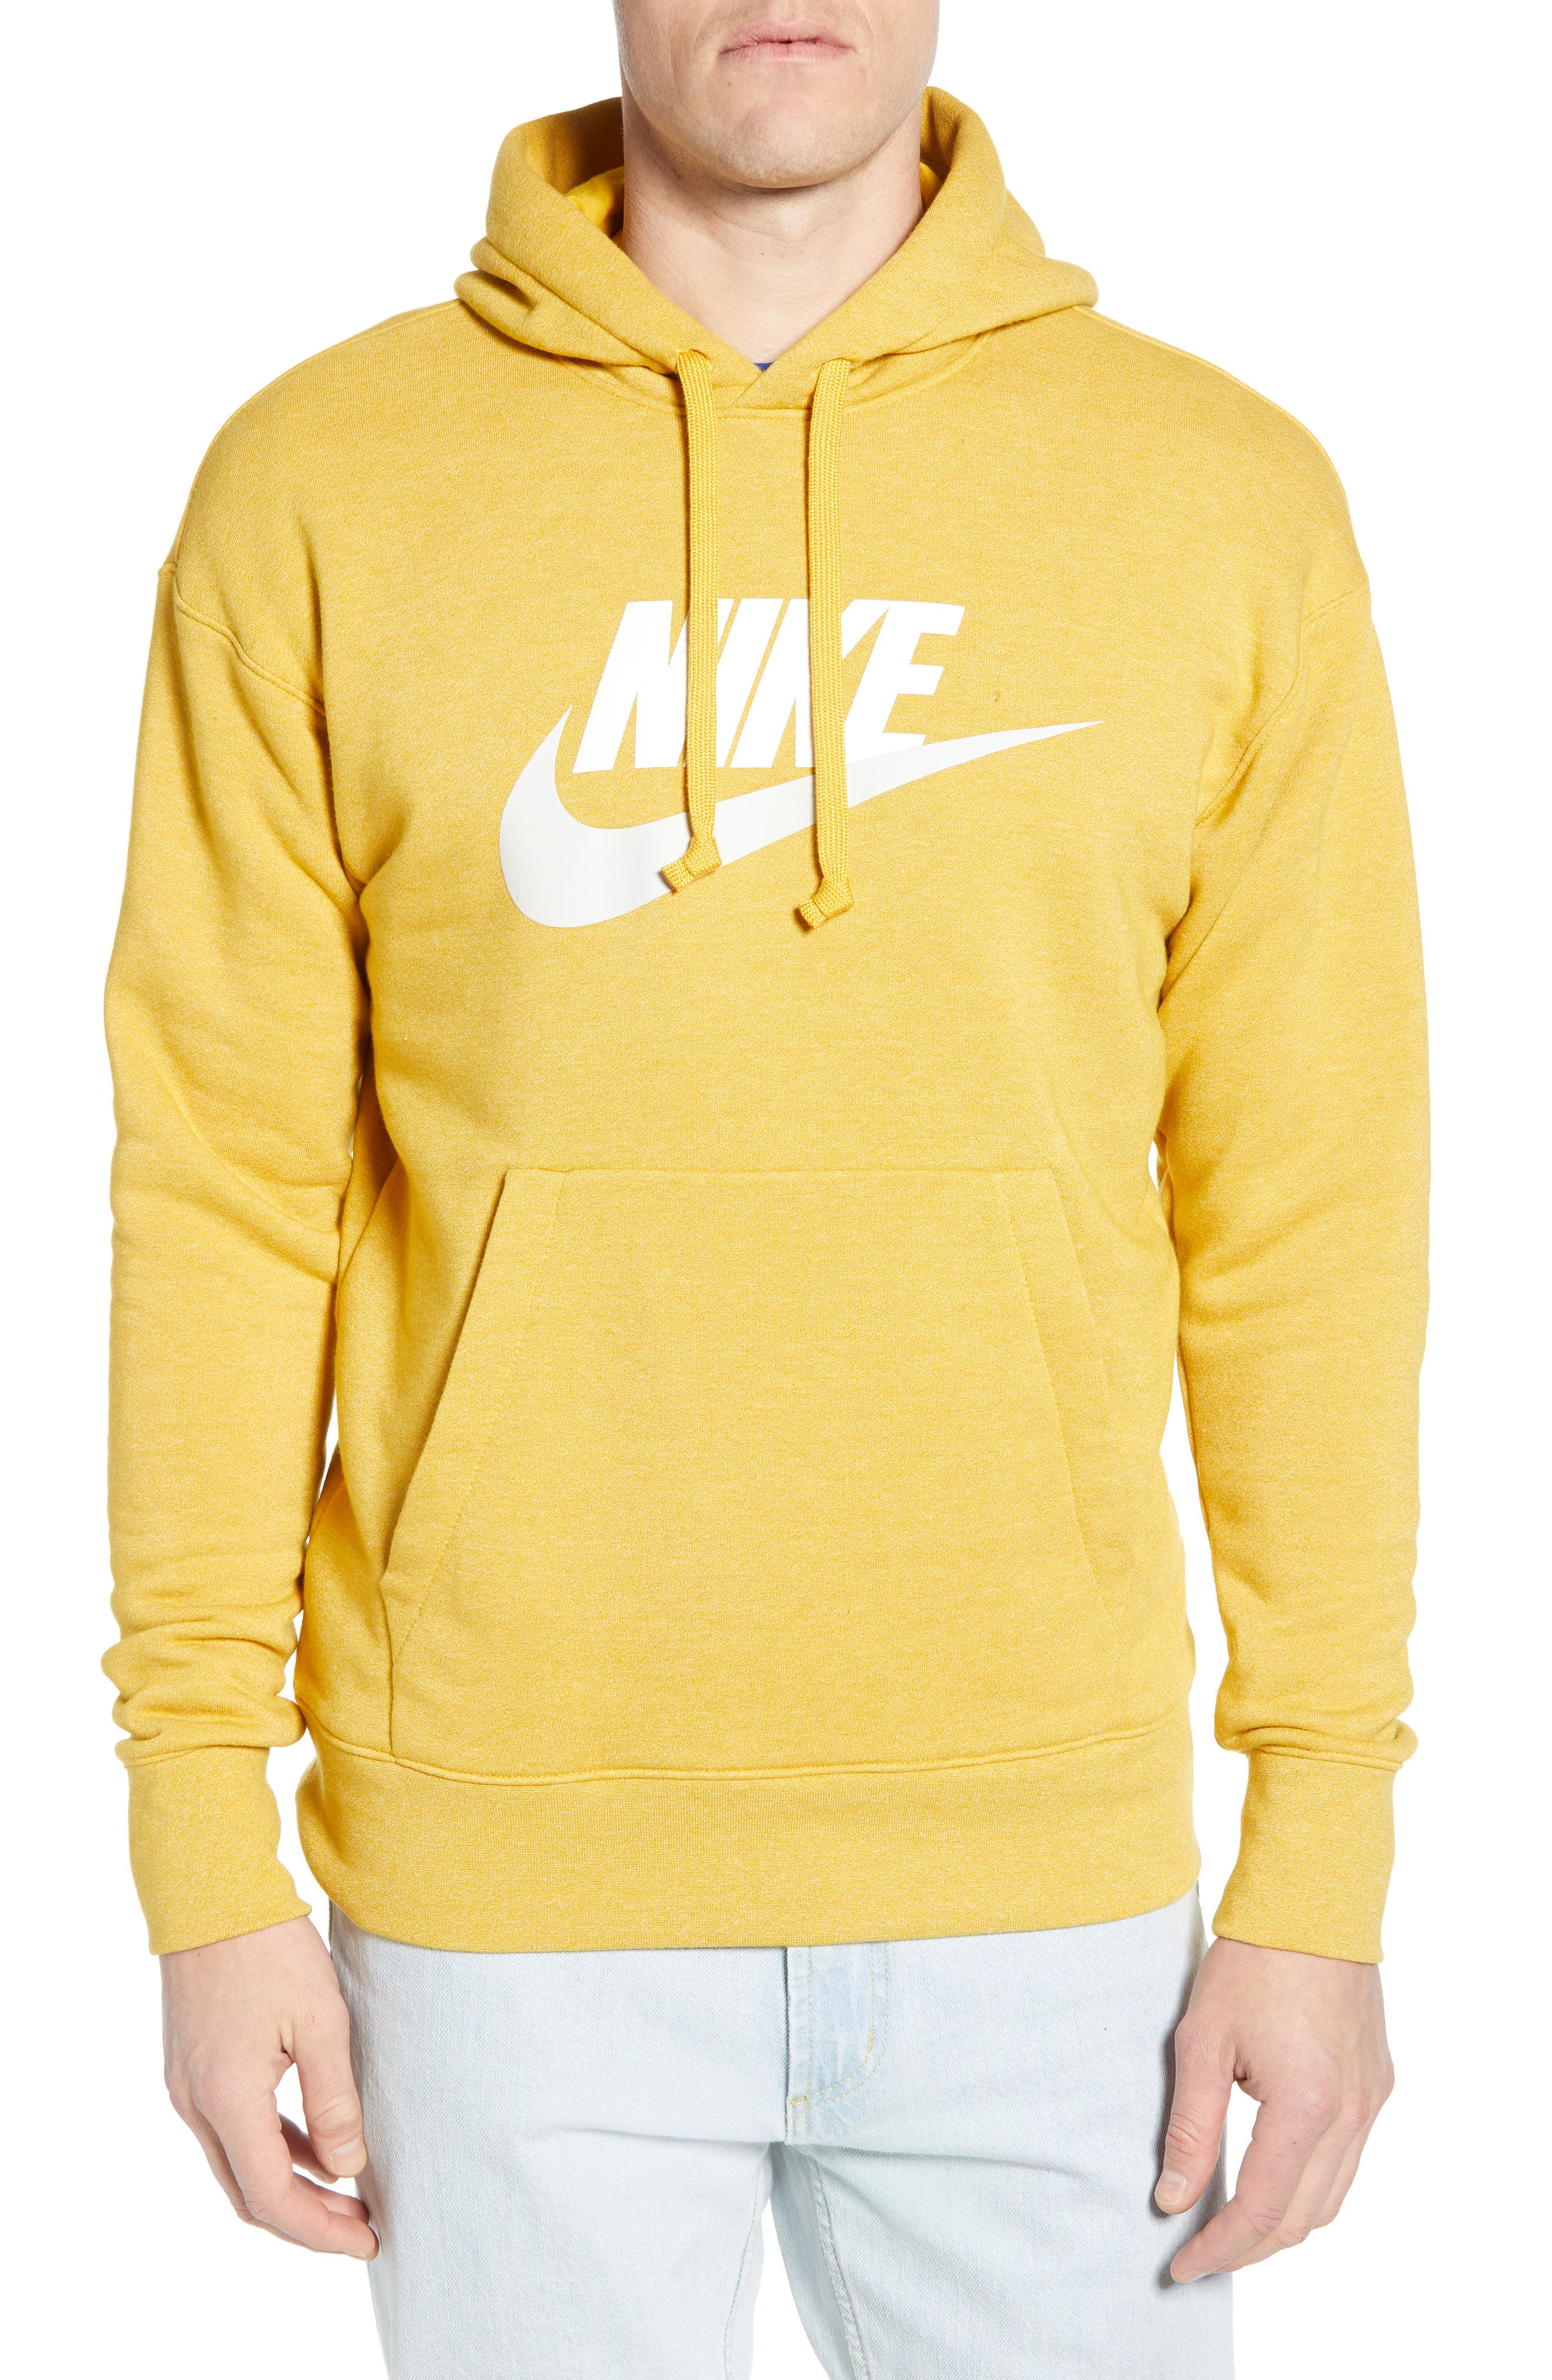 NIKE, Heritage Logo Hoodie, Main thumbnail 1, color, GOLD DART/ HEATHER